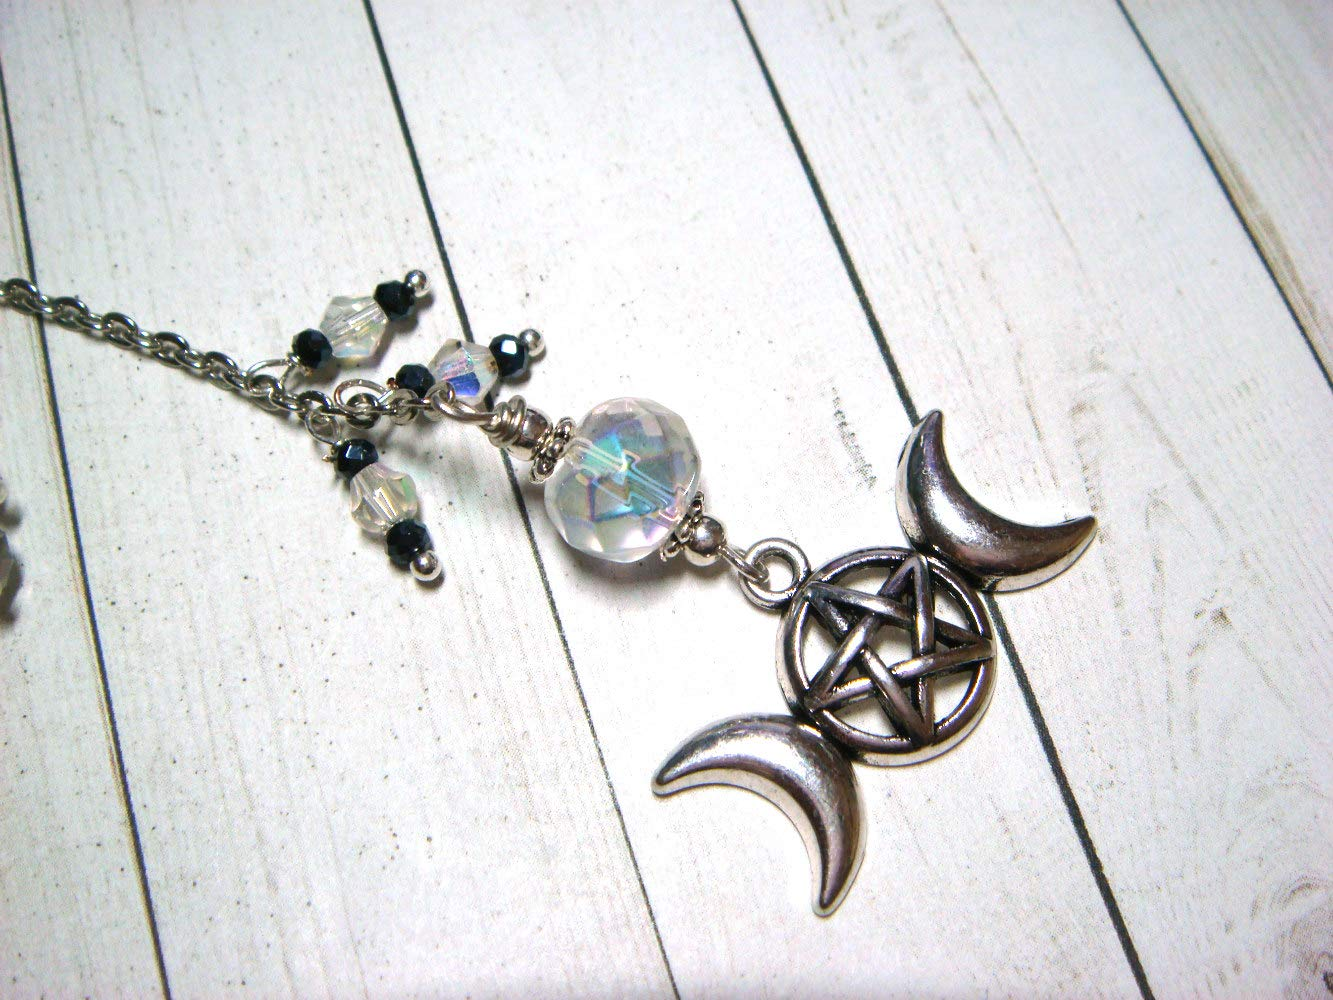 Rear View Mirror Ornament Triple Moon Goddess car accessory Wiccan Witchy accessory Pagan charm truck accessory sun catcher Witchcraft